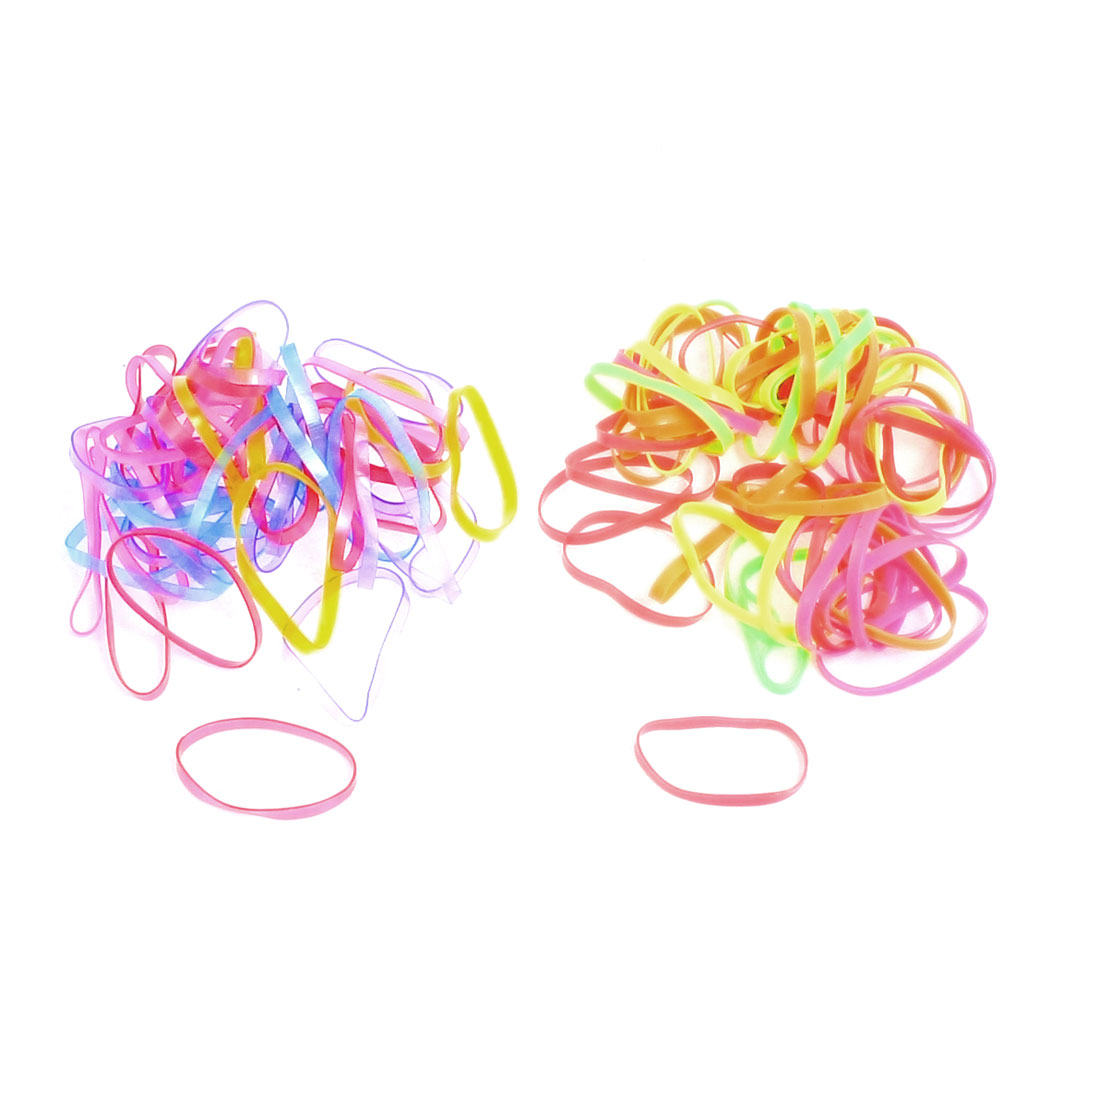 Unique Bargains 100 Pcs Multicolor Rubber Hair Ties Bands Ponytail Braid Holder Elastics